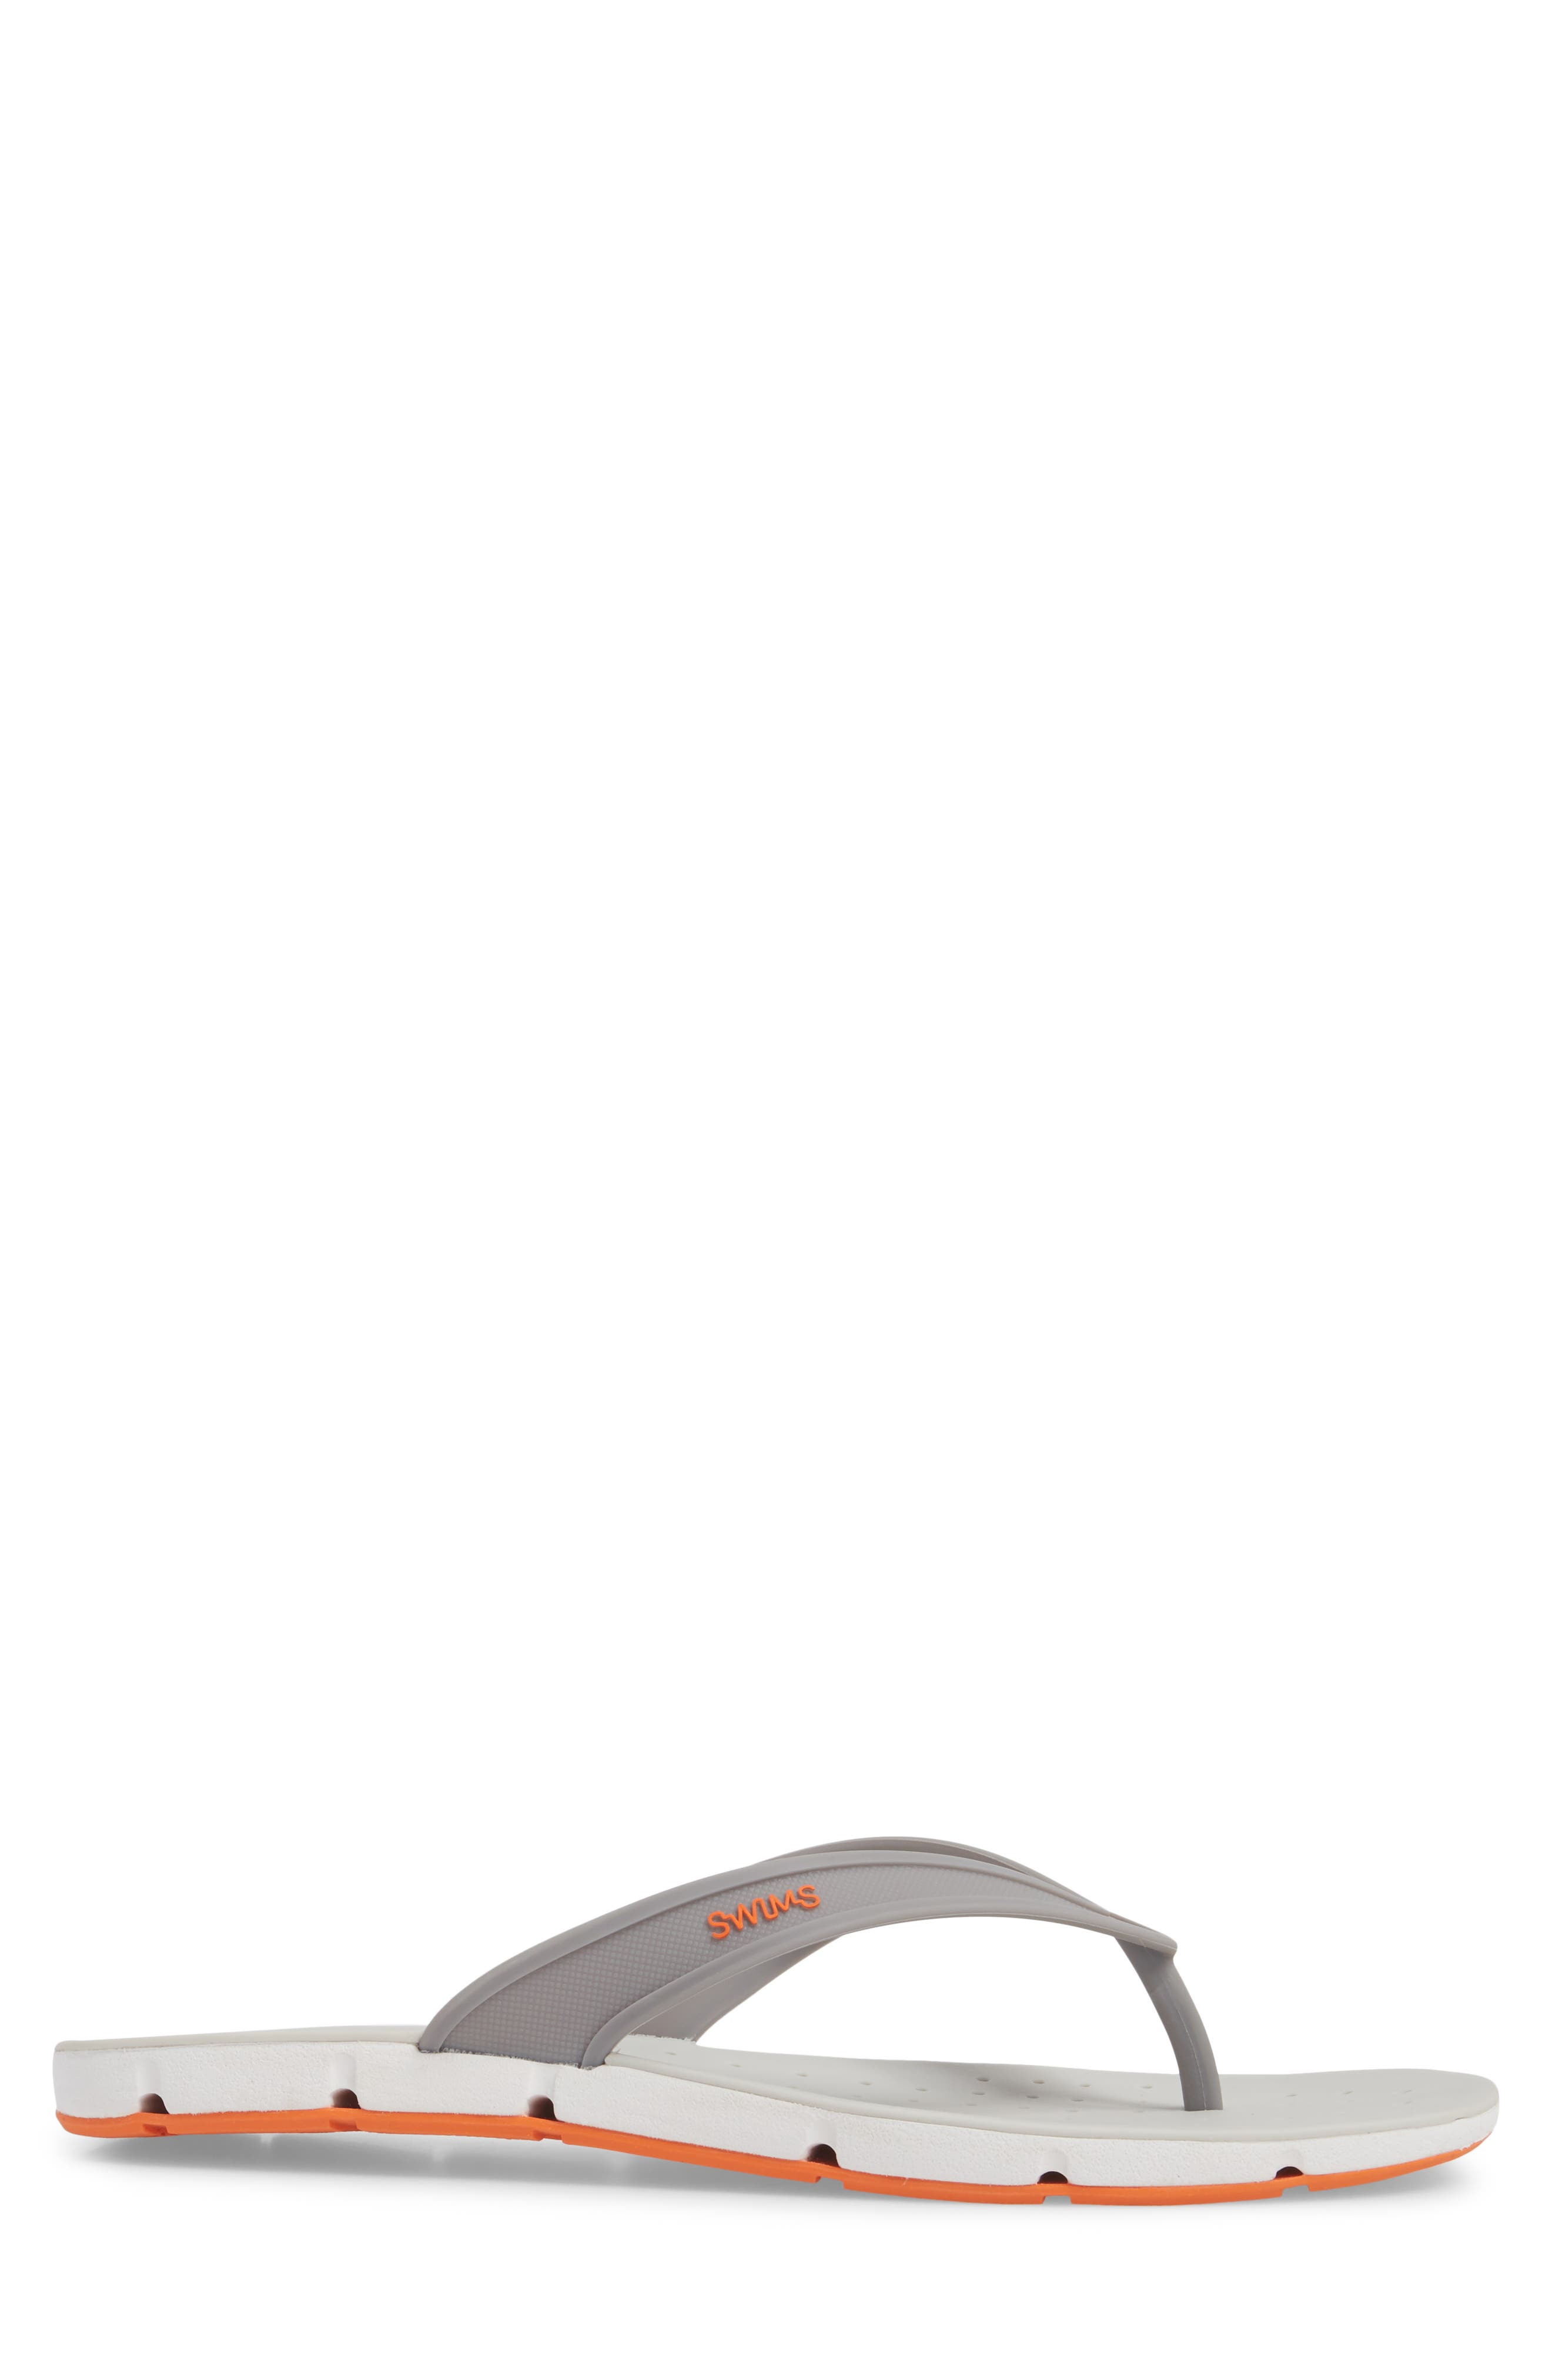 Breeze Flip Flop,                             Alternate thumbnail 3, color,                             GRAY / WHITE / ORANGE